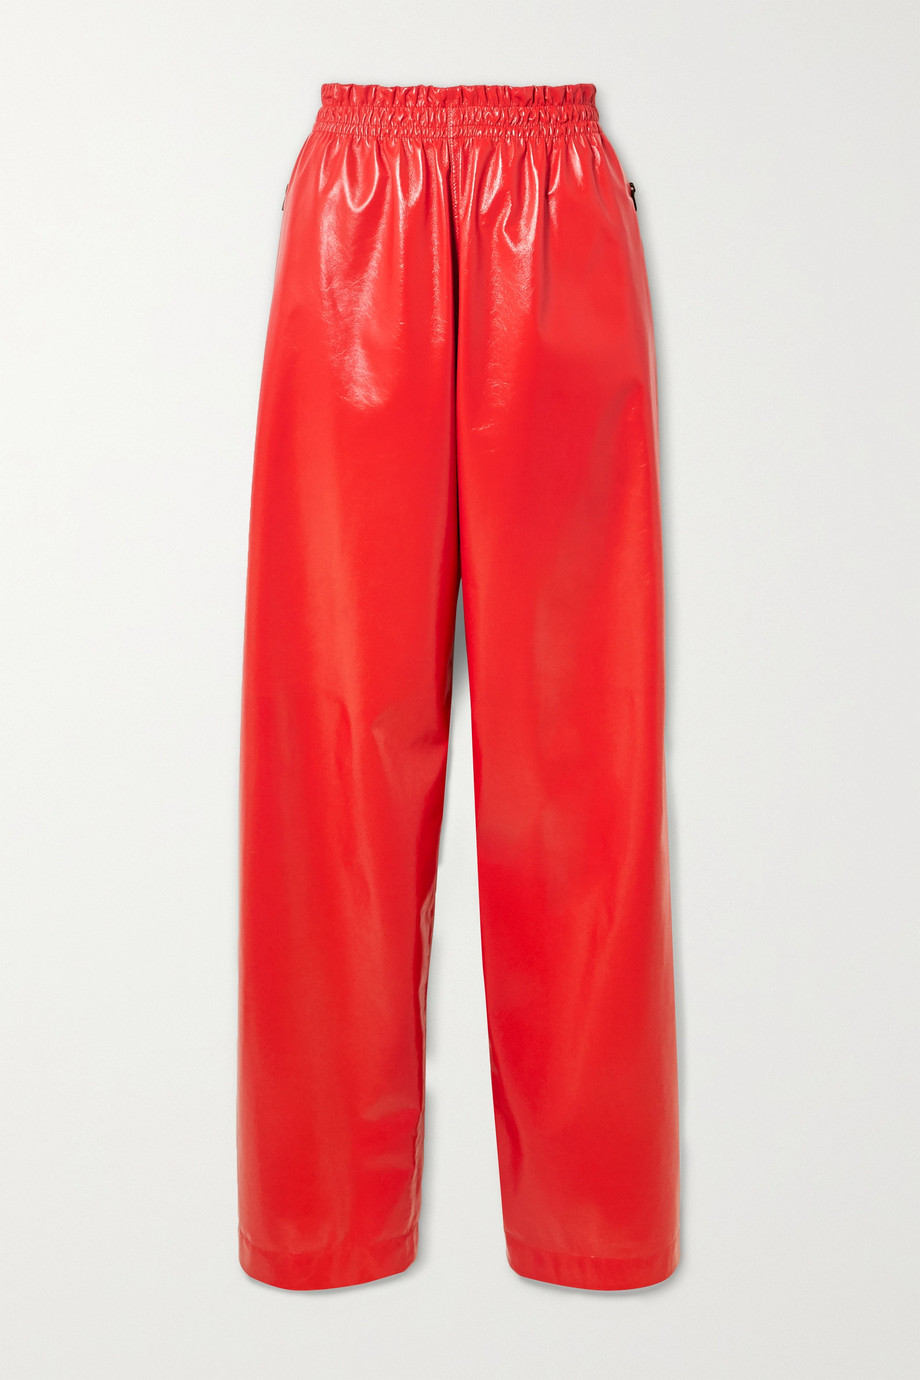 Bottega Veneta Crinkled glossed-leather wide-leg pants